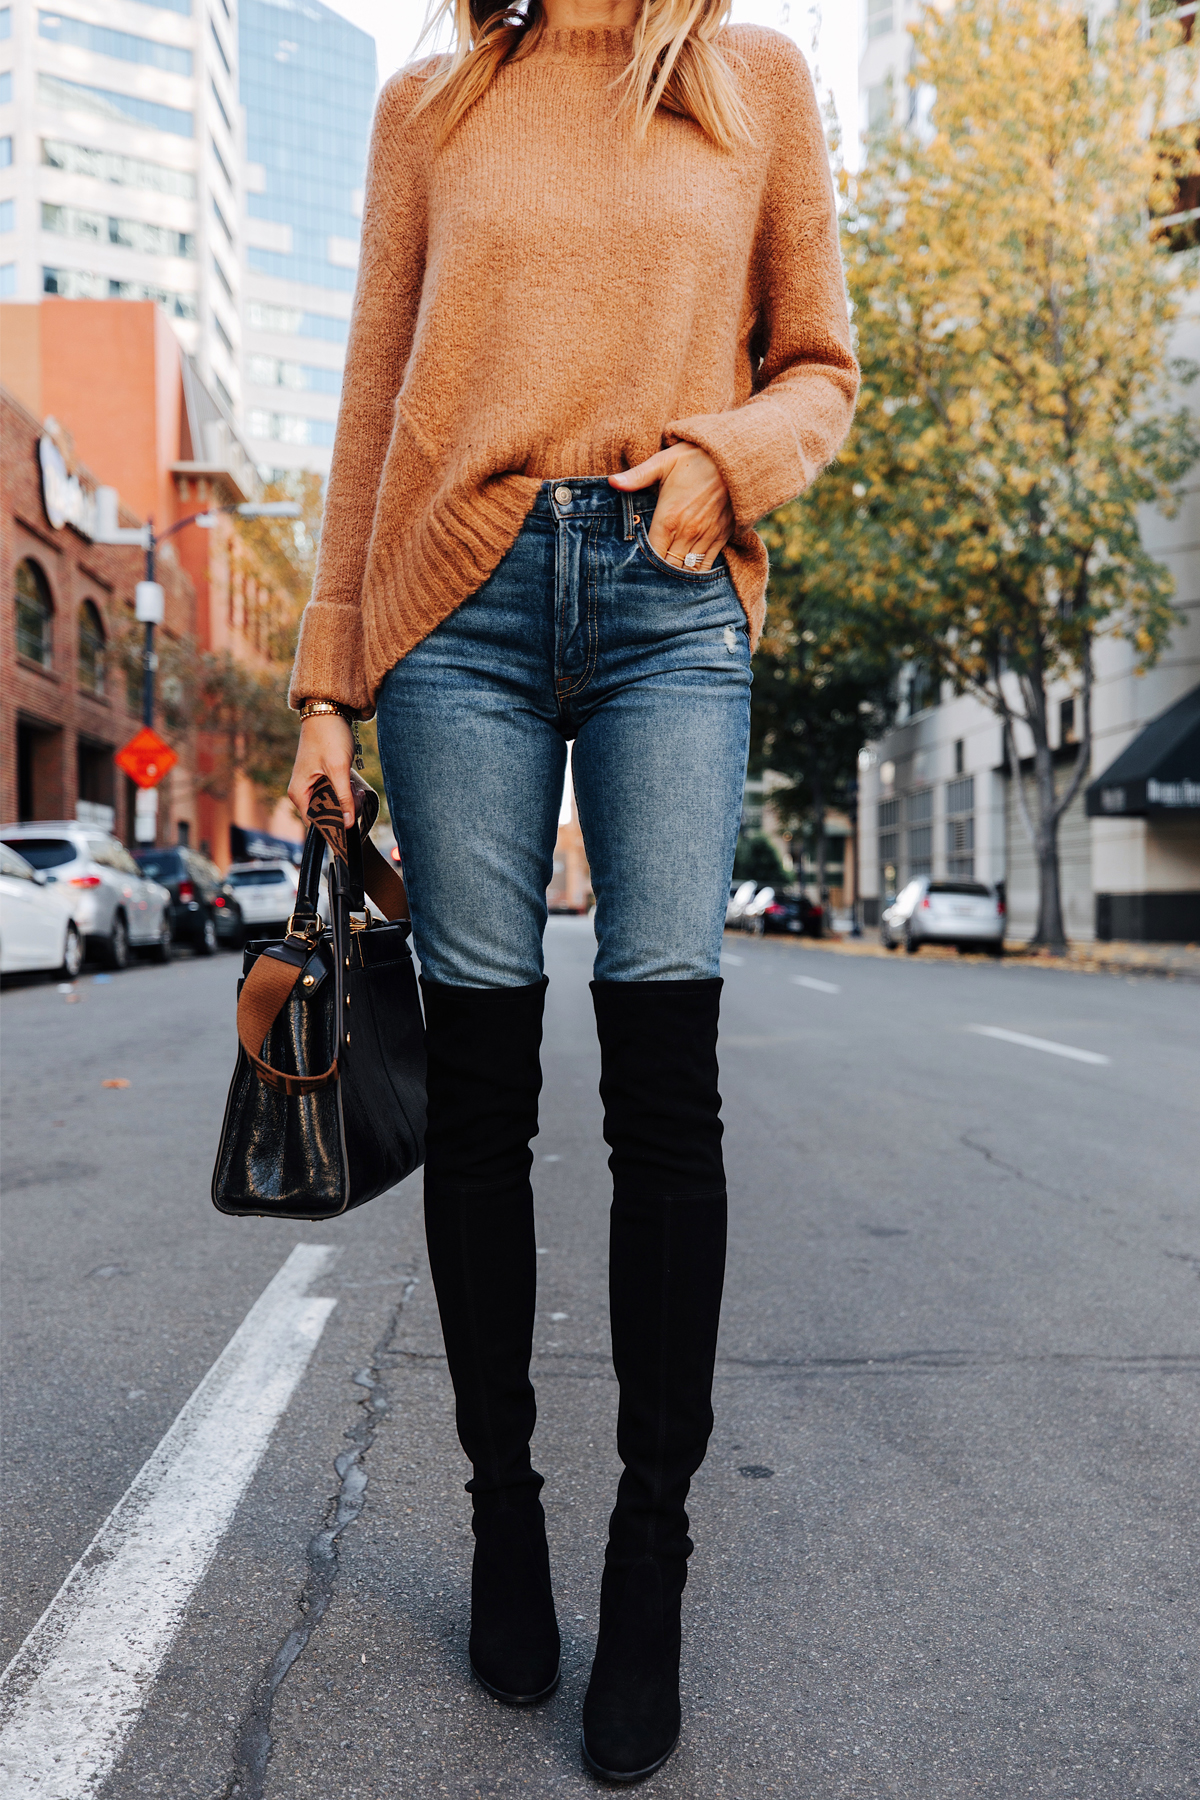 Fashion Jackson Wearing Camel Sweater Stuart Weitzman Black Over the Knee Boots Fendi Peekaboo Black Handbag 3